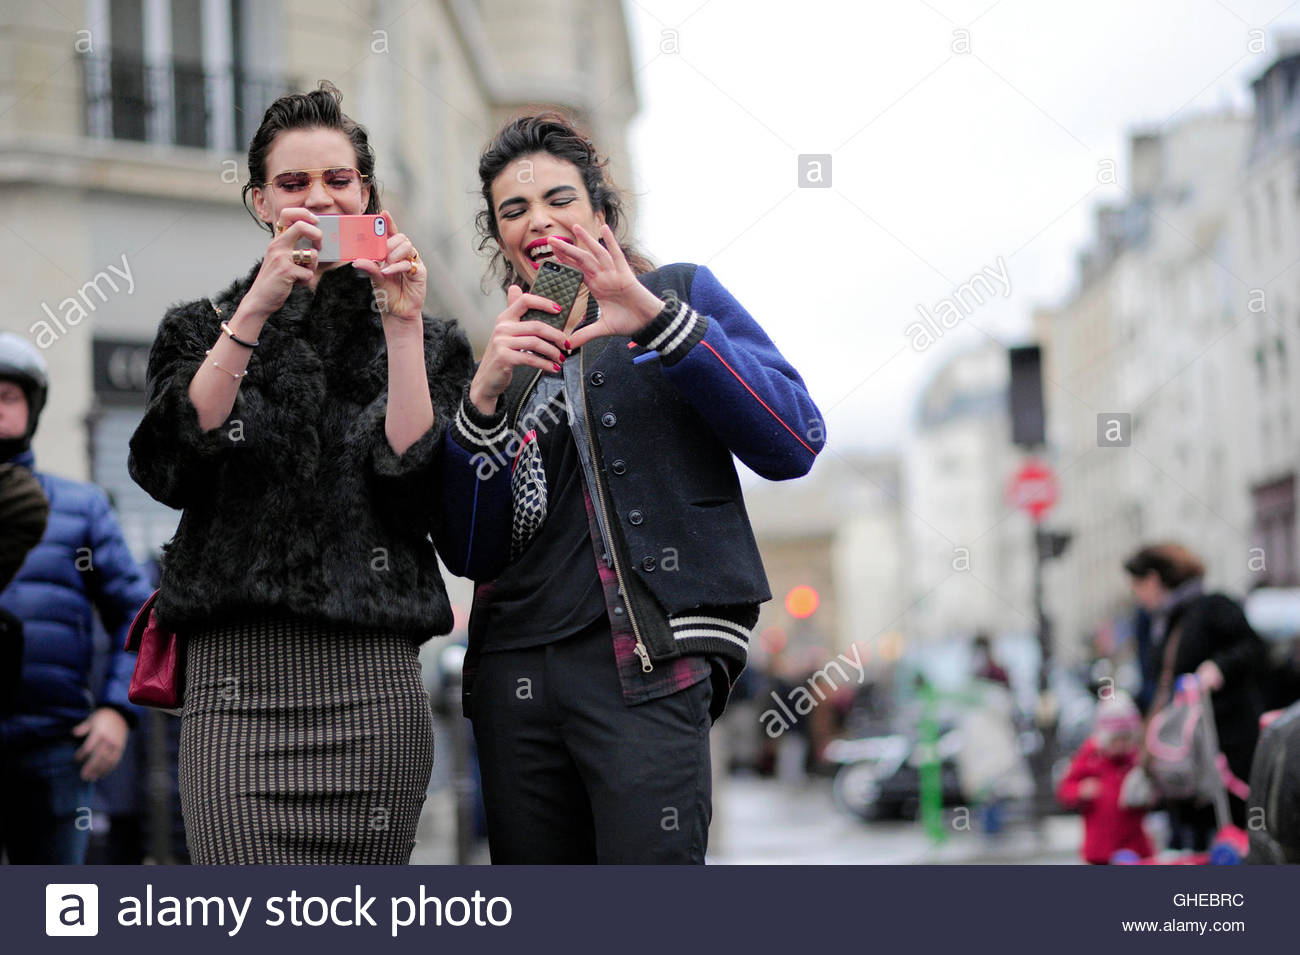 Women taking photos with their phones on Rue St Martin during Paris Fashion Week. - Stock Image